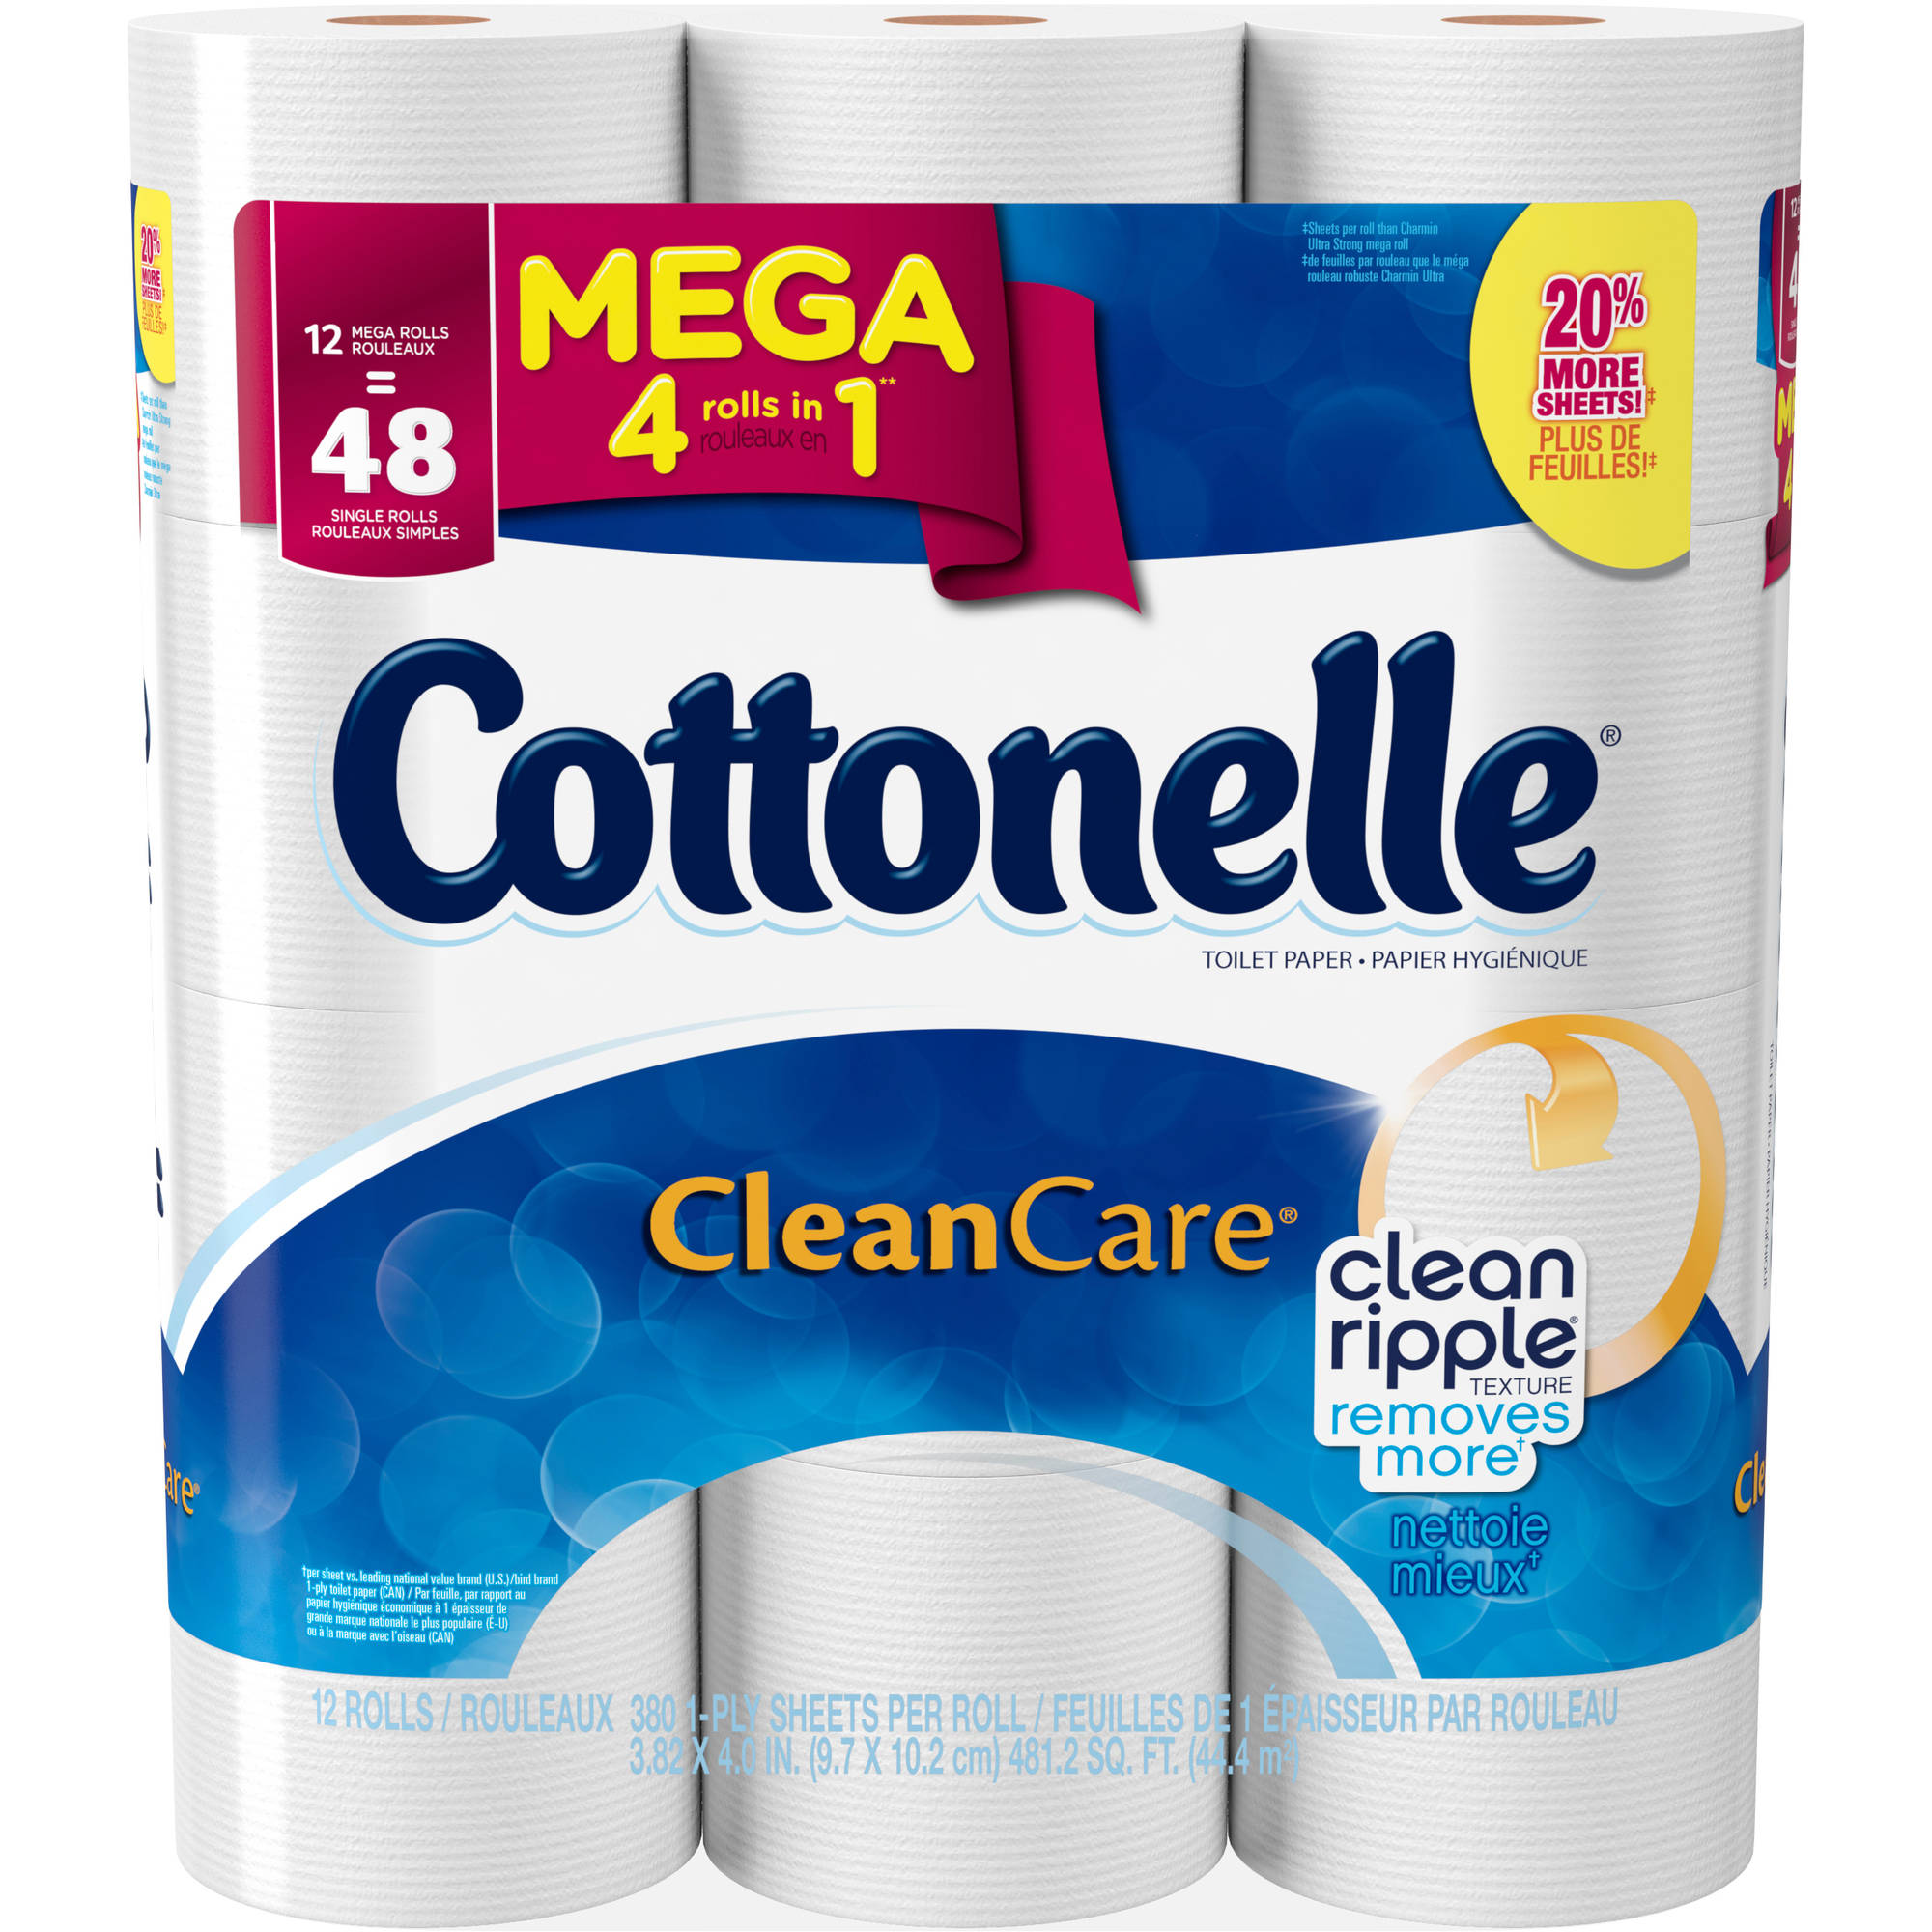 Cottonelle Clean Care Toilet Paper, 12 Mega Rolls